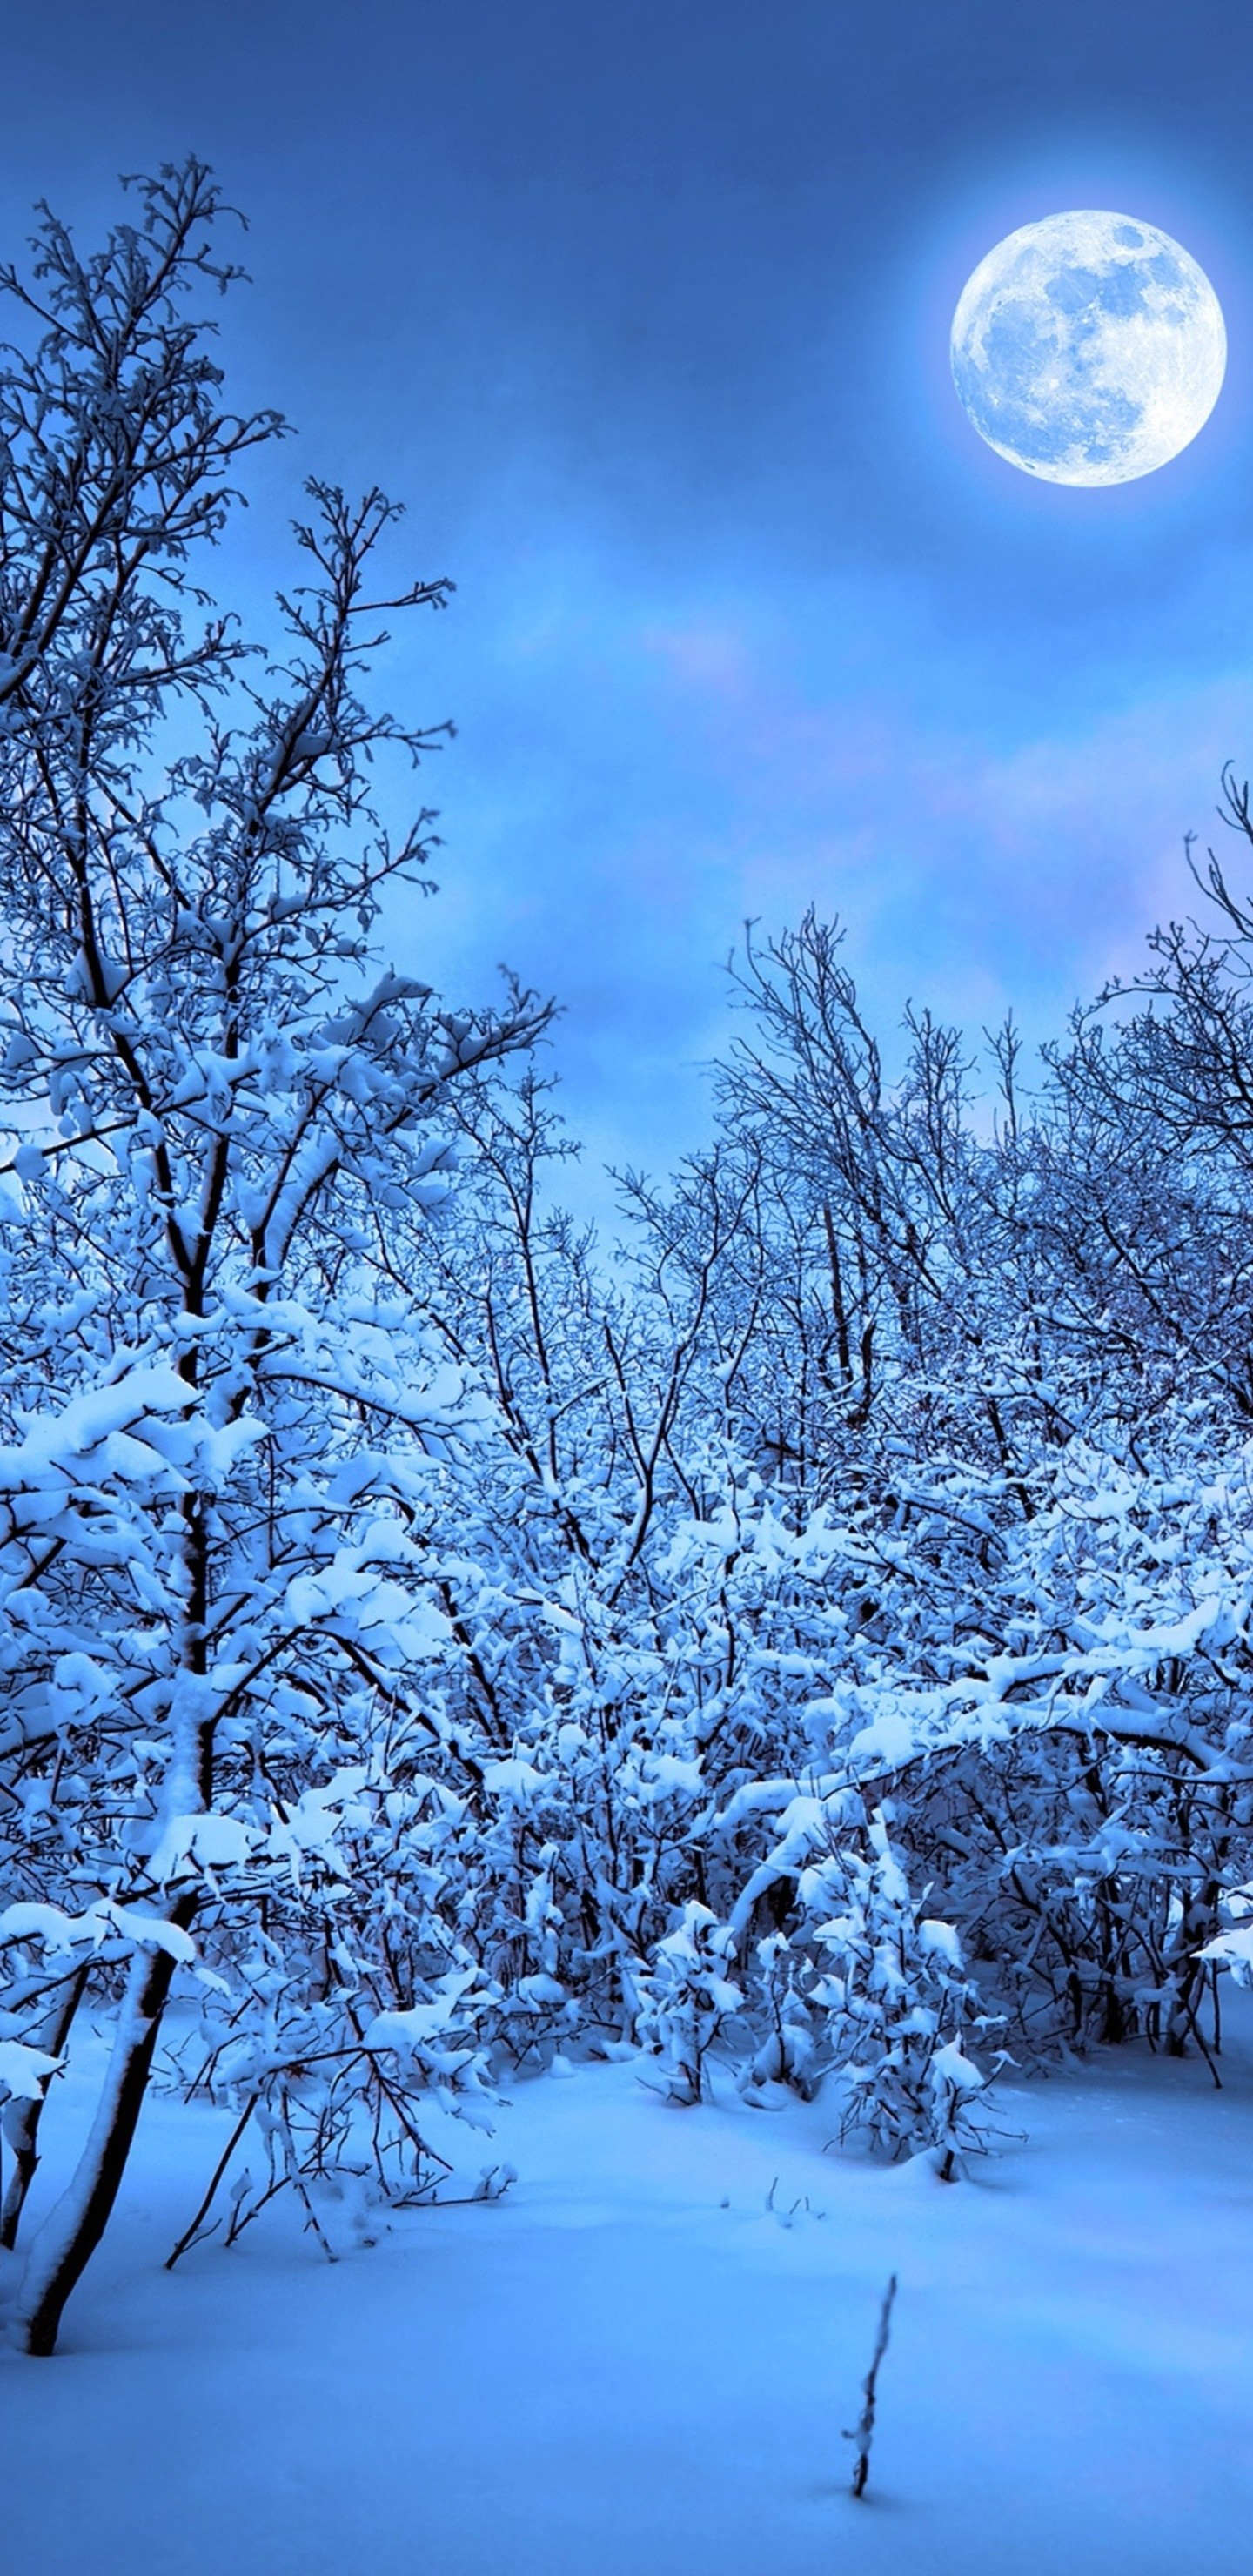 Snow winter wallpapers 68 background pictures - Nature wallpaper note 8 ...